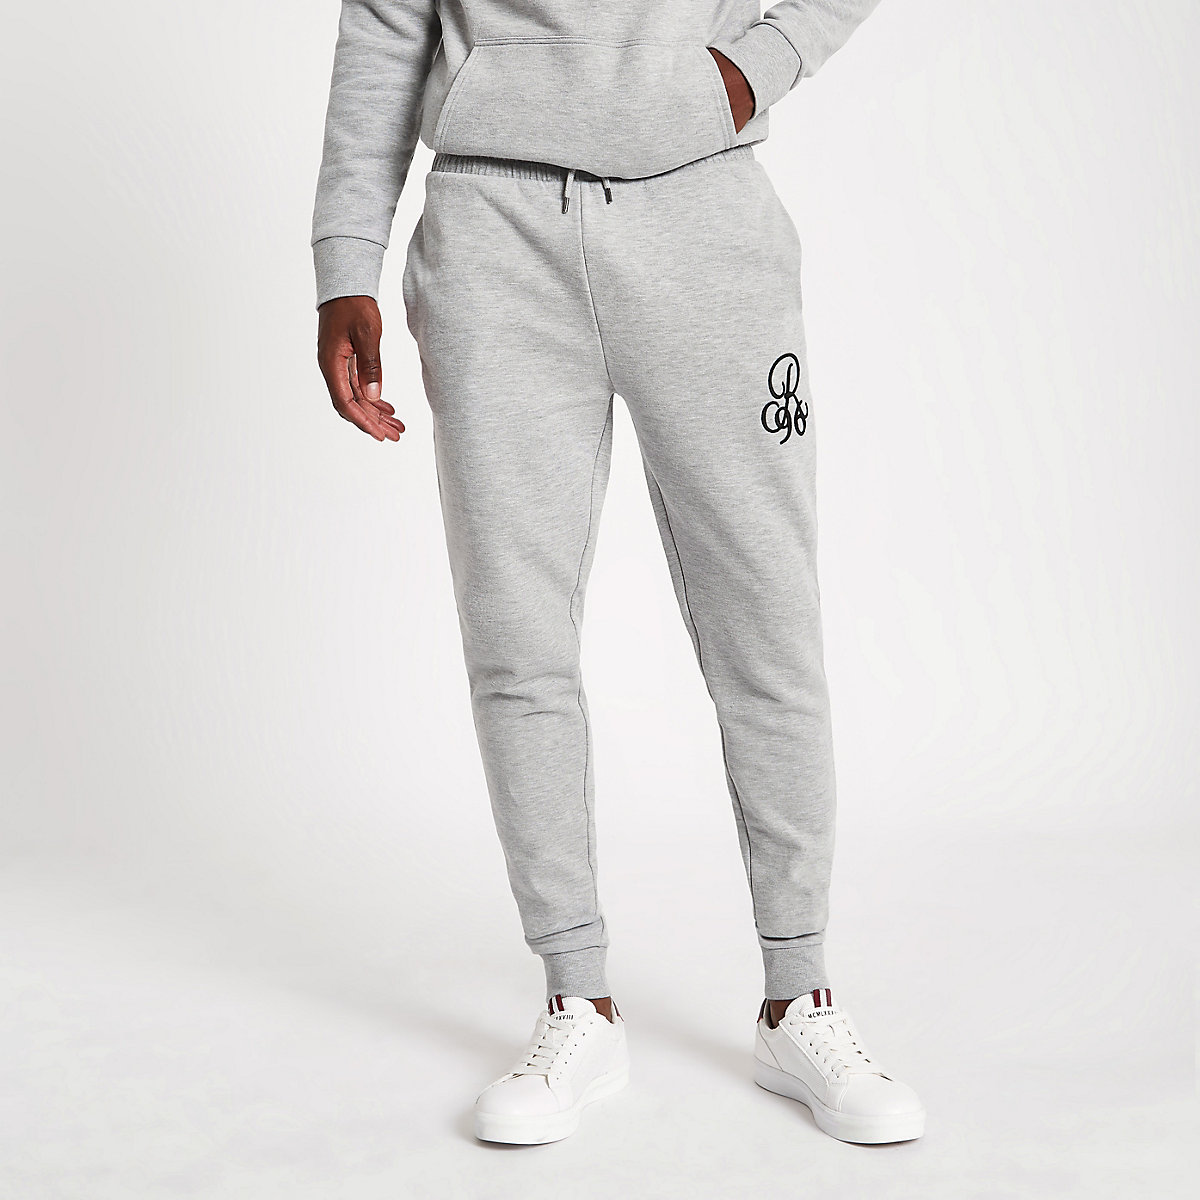 R96 grey marl muscle fit joggers